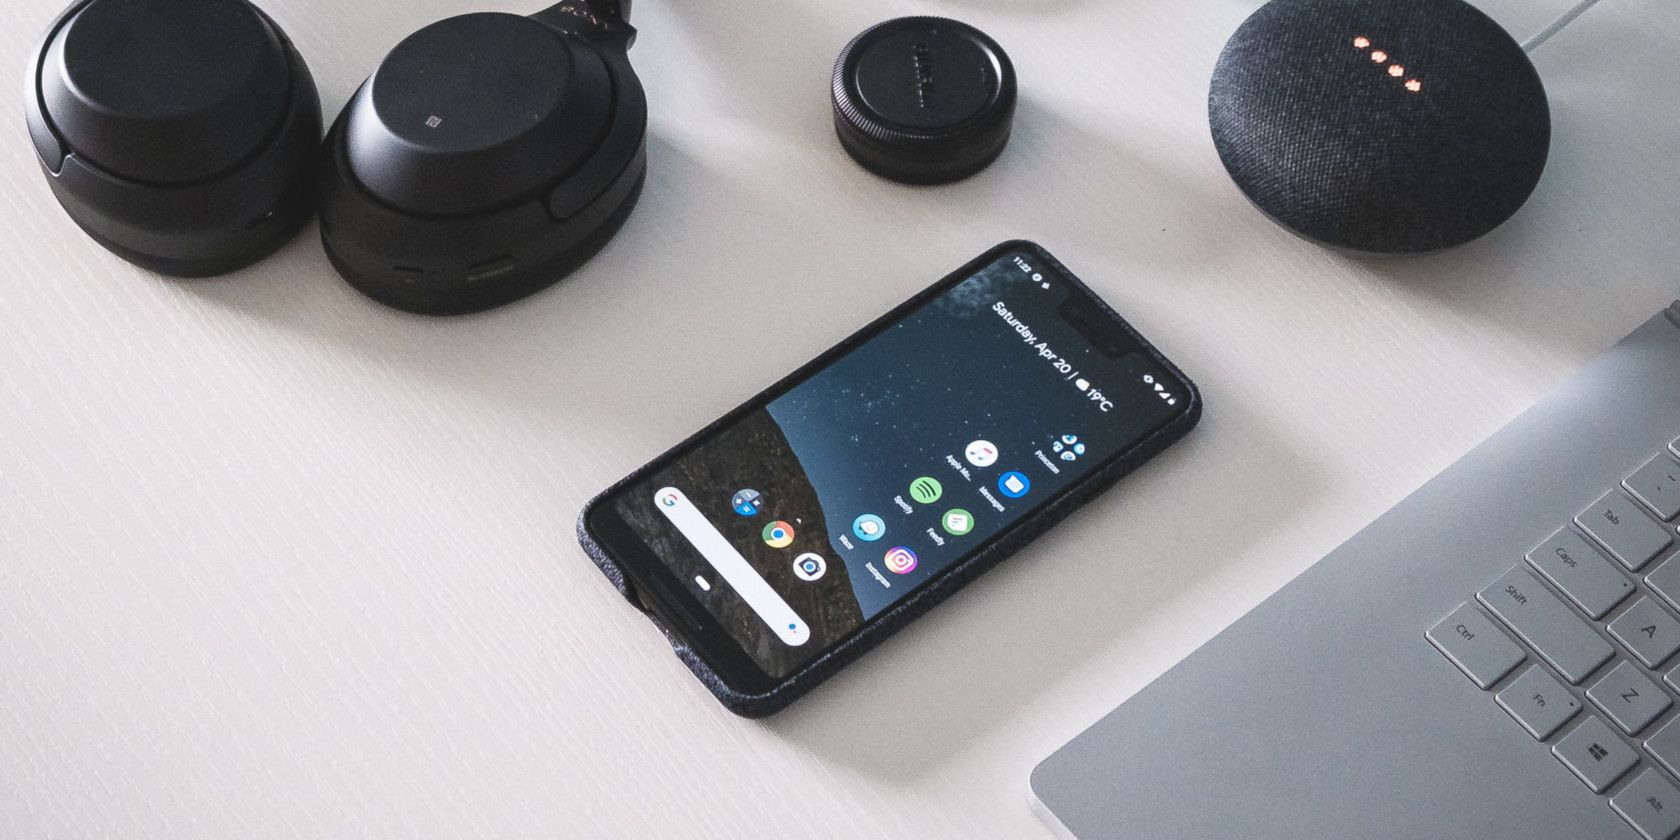 Do More With Your Android Phone: 70+ Tips and Tricks You Should Know android 10 google pixel 3 android phone featured